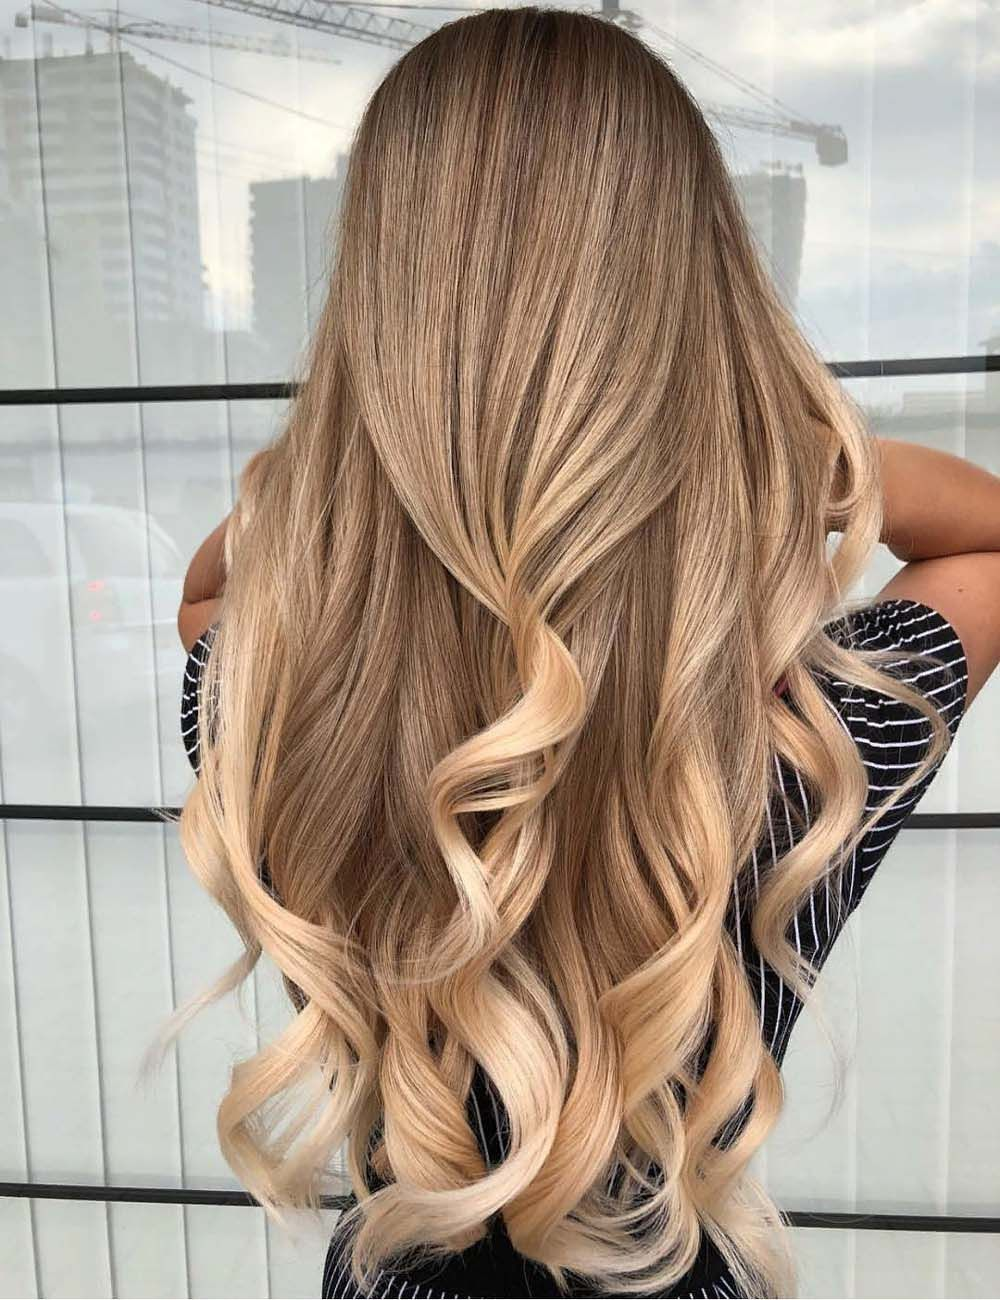 Attractive Blends Of Sandy Blonde Hair In 2019 Blonde Hair Color Blonde Hair Looks Sandy Blonde Hair